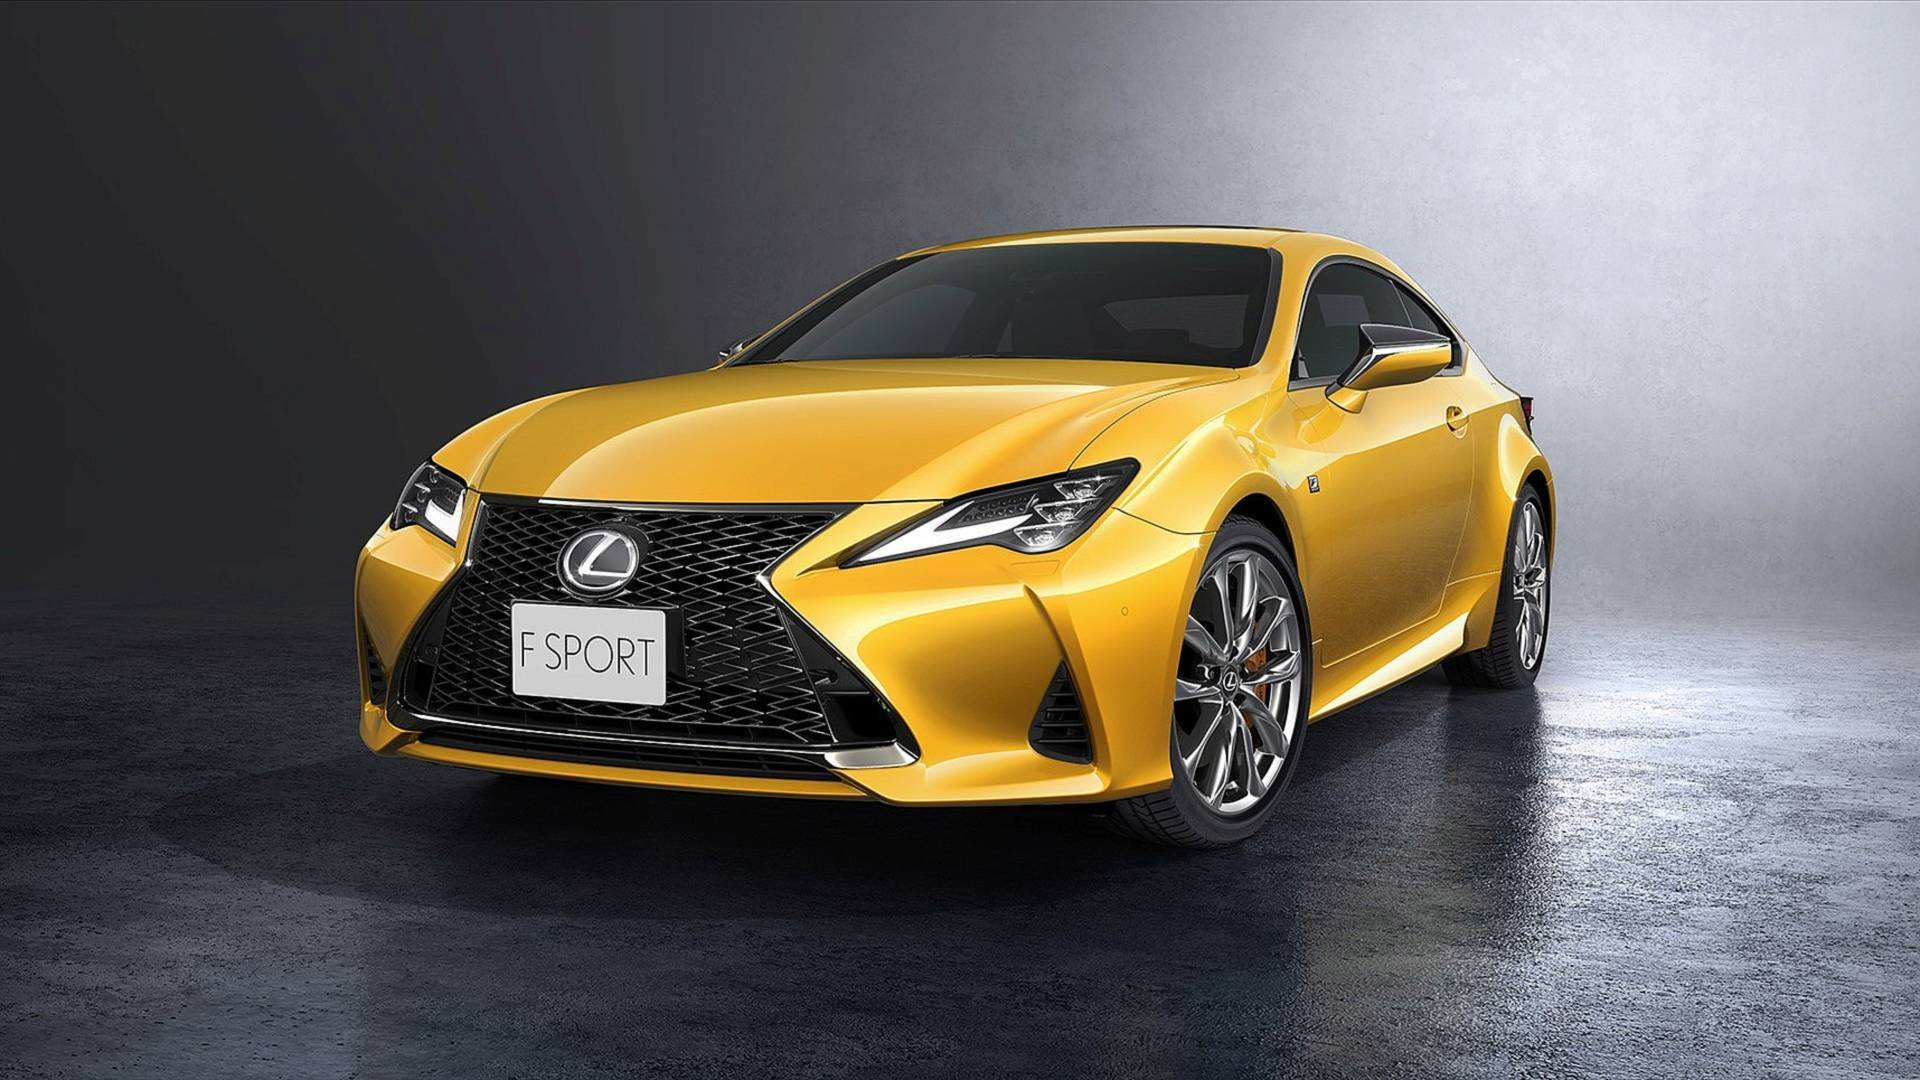 30 Gallery of 2019 Lexus Rc Specs for 2019 Lexus Rc